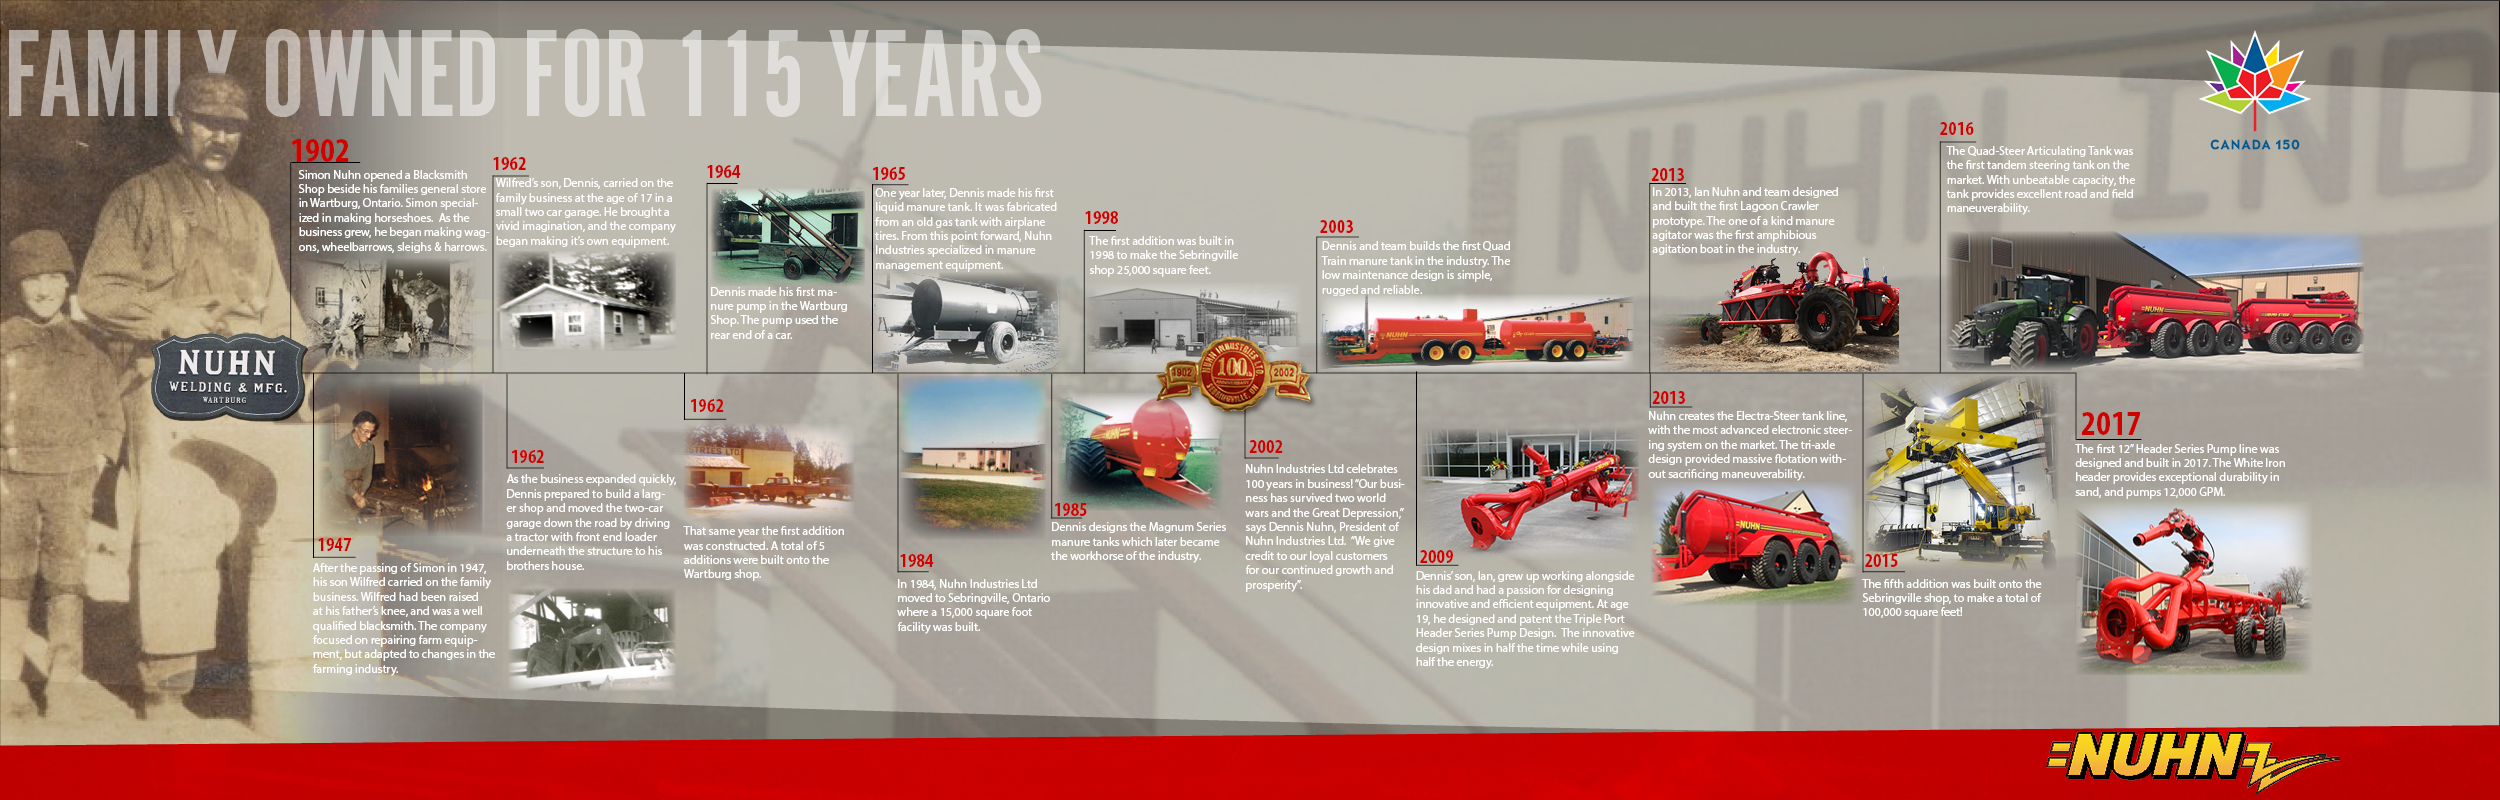 Nuhn Industries Ltd  Celebrates 115 years as a family owned business!